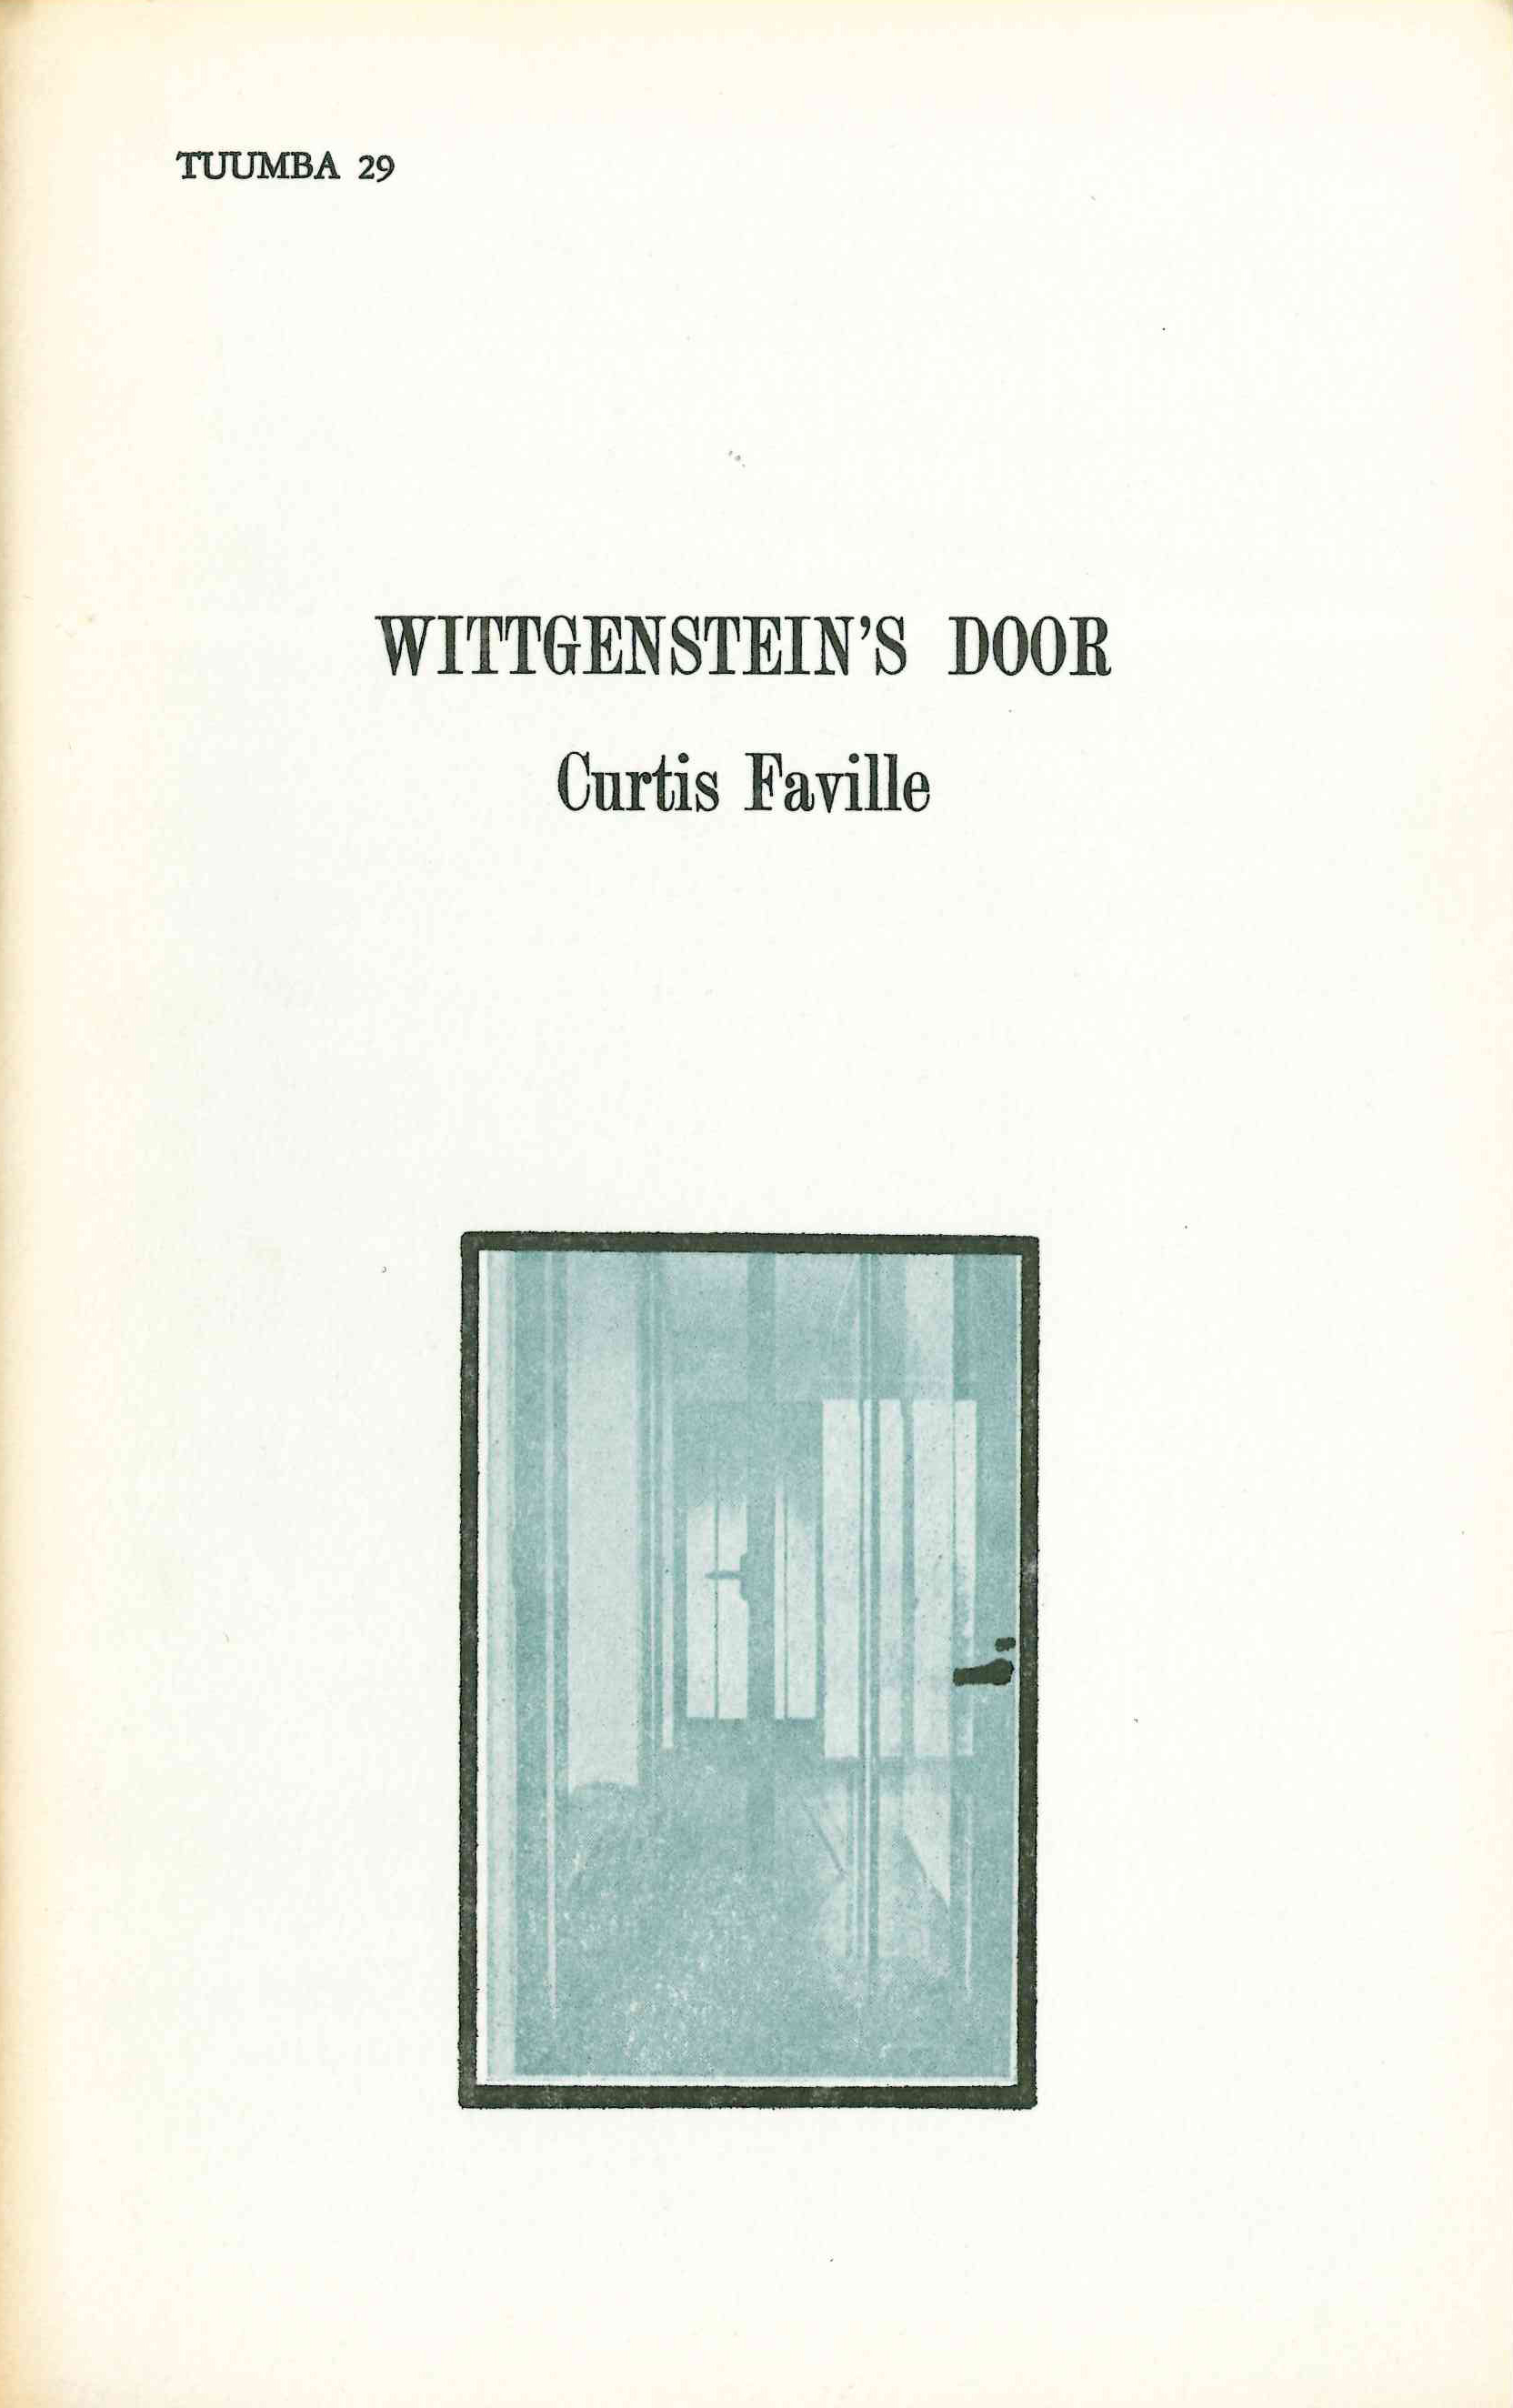 Wittgenstein's Door